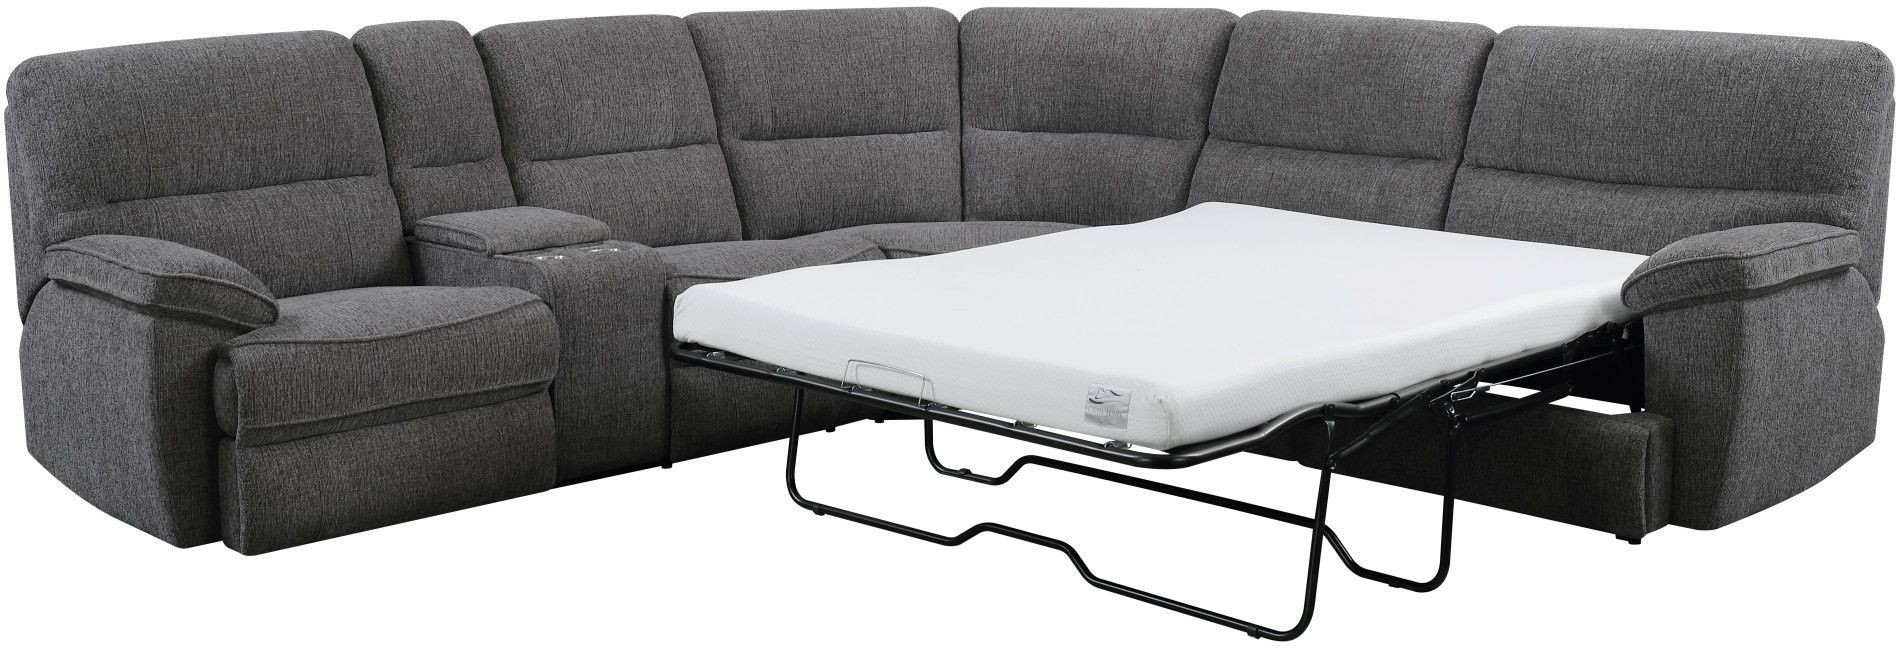 Aurora Platinum 3 Piece Power Reclining Sleeper Sectional From In Aurora 2 Piece Sectionals (Image 7 of 25)